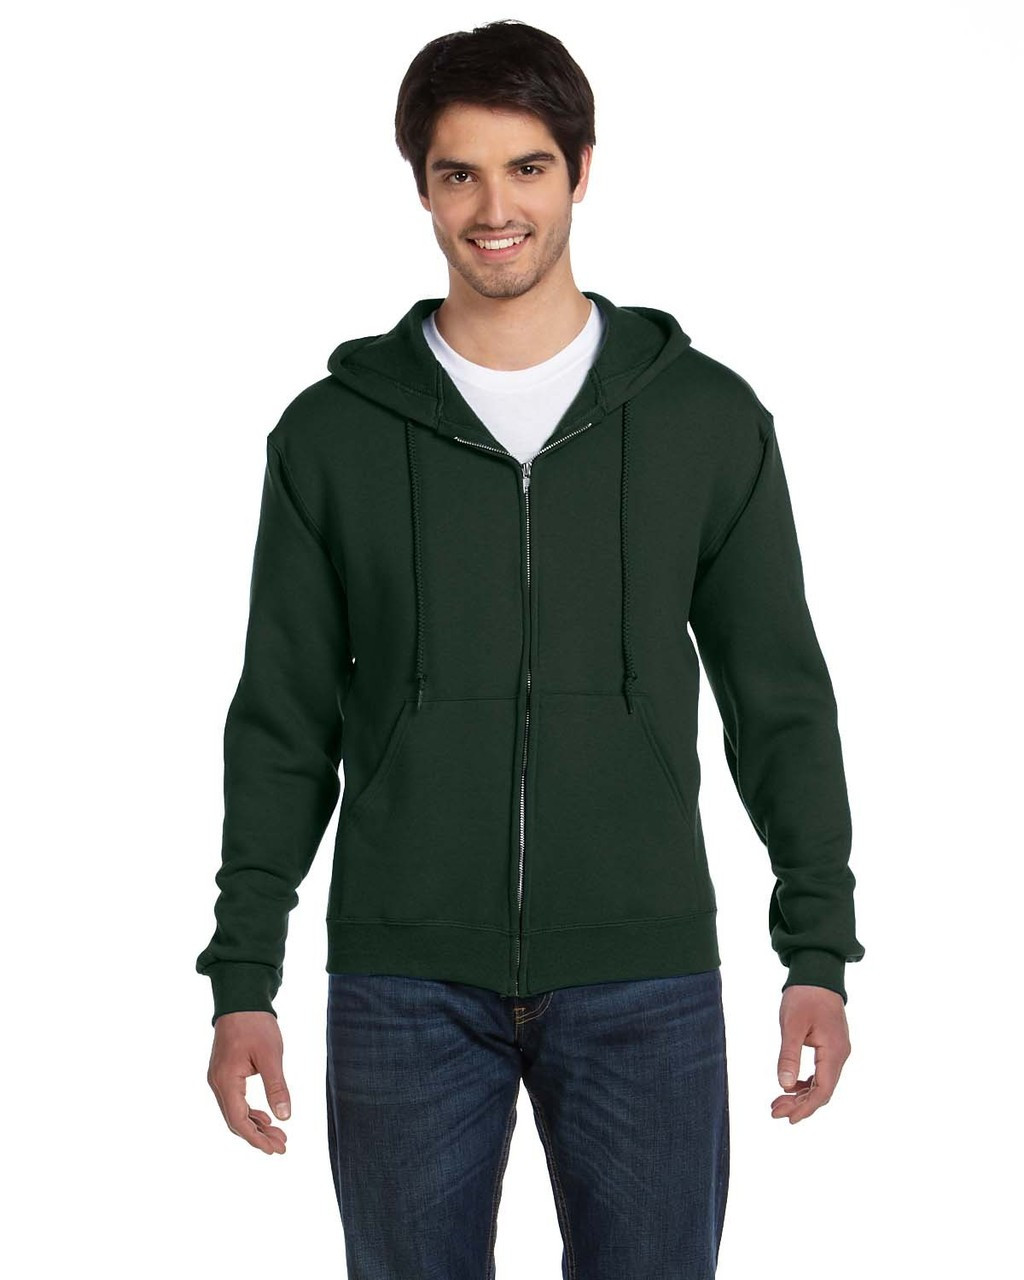 Forest Green - 82230 Fruit of the Loom Supercotton™ Full-Zip Hoodie | Blankclothing.ca